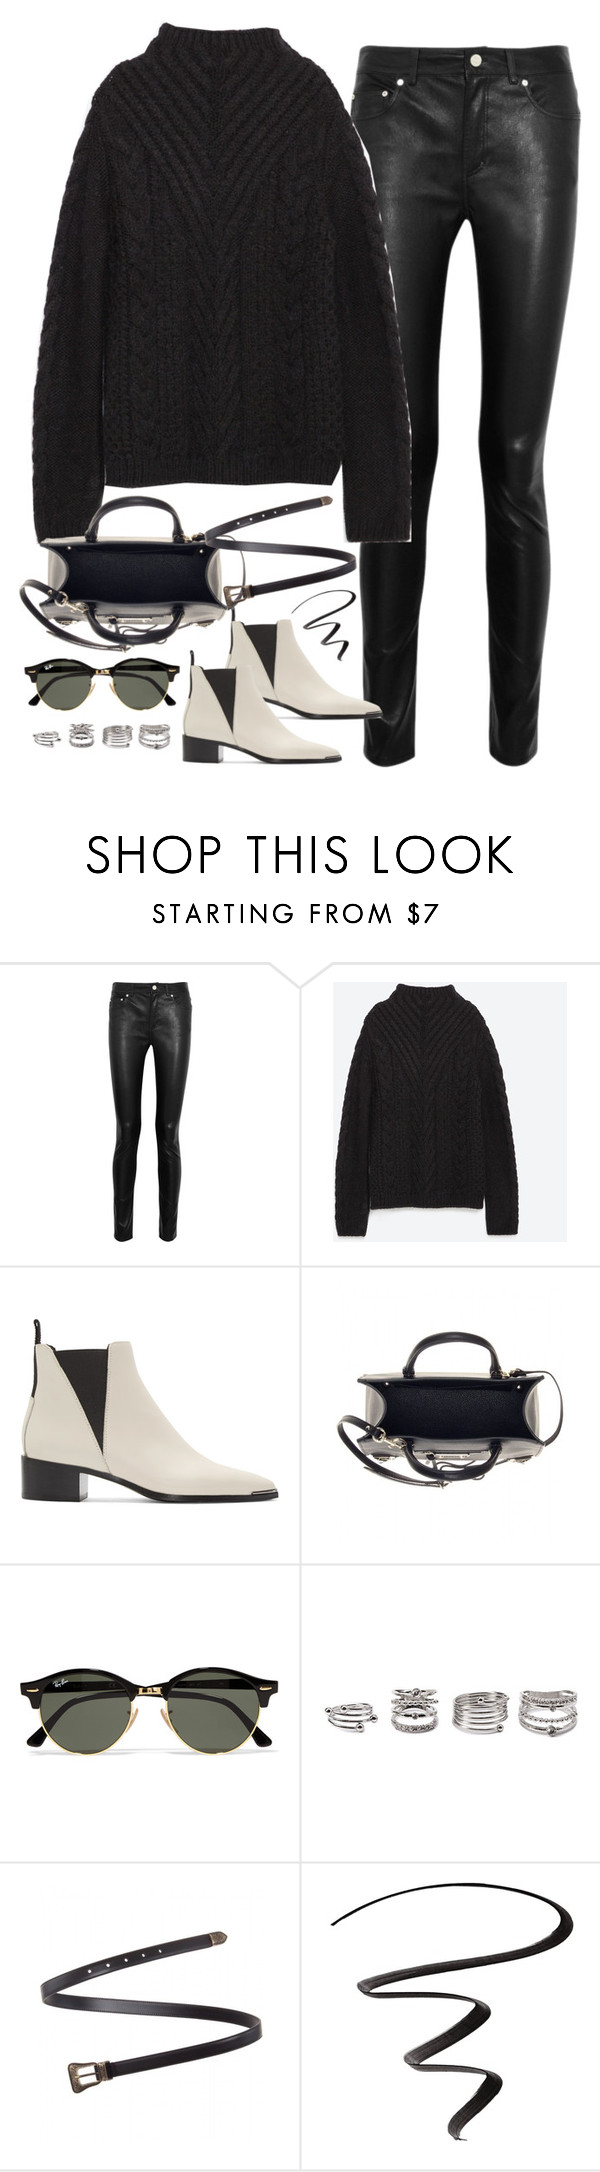 """""""Untitled#4402"""" by fashionnfacts ❤ liked on Polyvore featuring Acne Studios, Zara, Balenciaga, Ray-Ban, Forever 21, Yves Saint Laurent and L'Oréal Paris"""